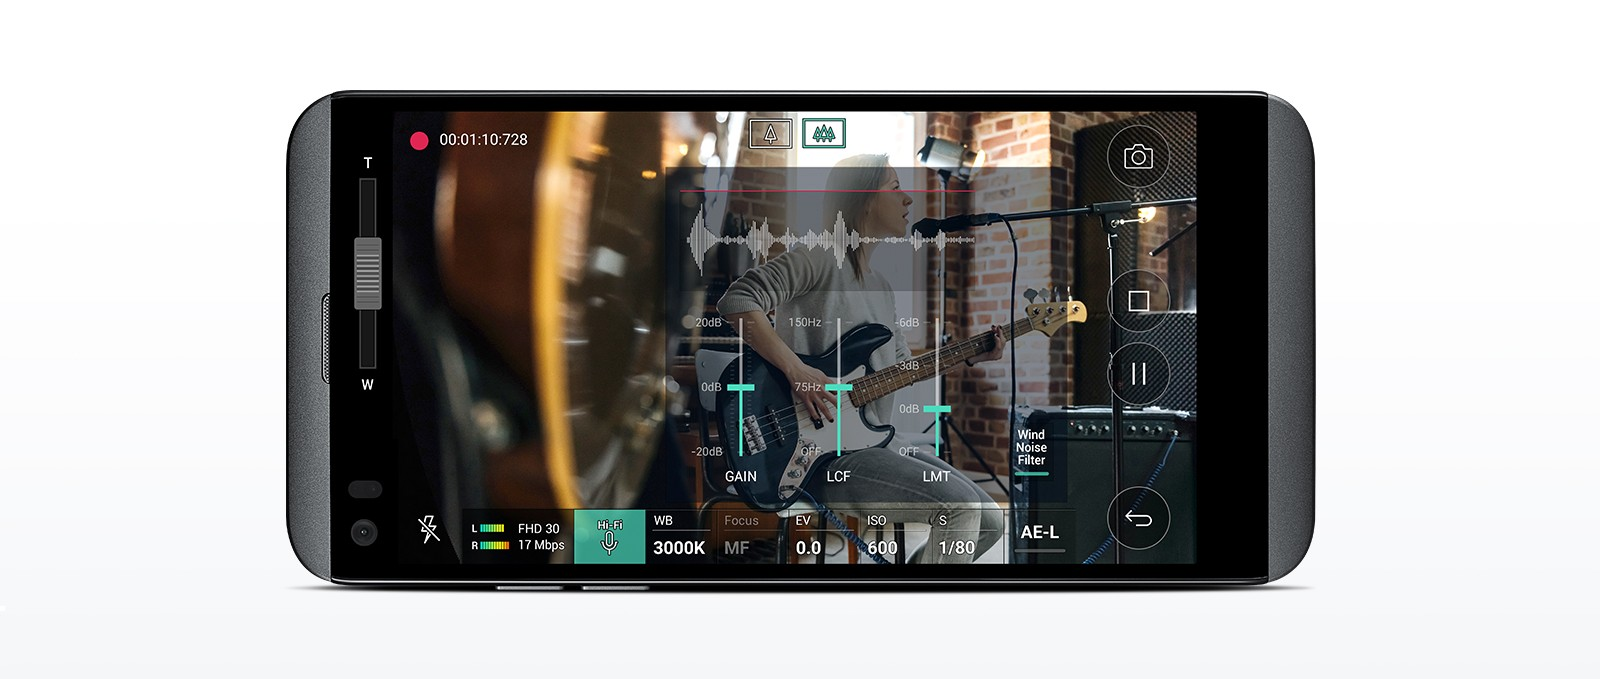 The front view of the LG Q8, with the screen displaying the Hi-Fi Recording of a woman singing and playing the guitar